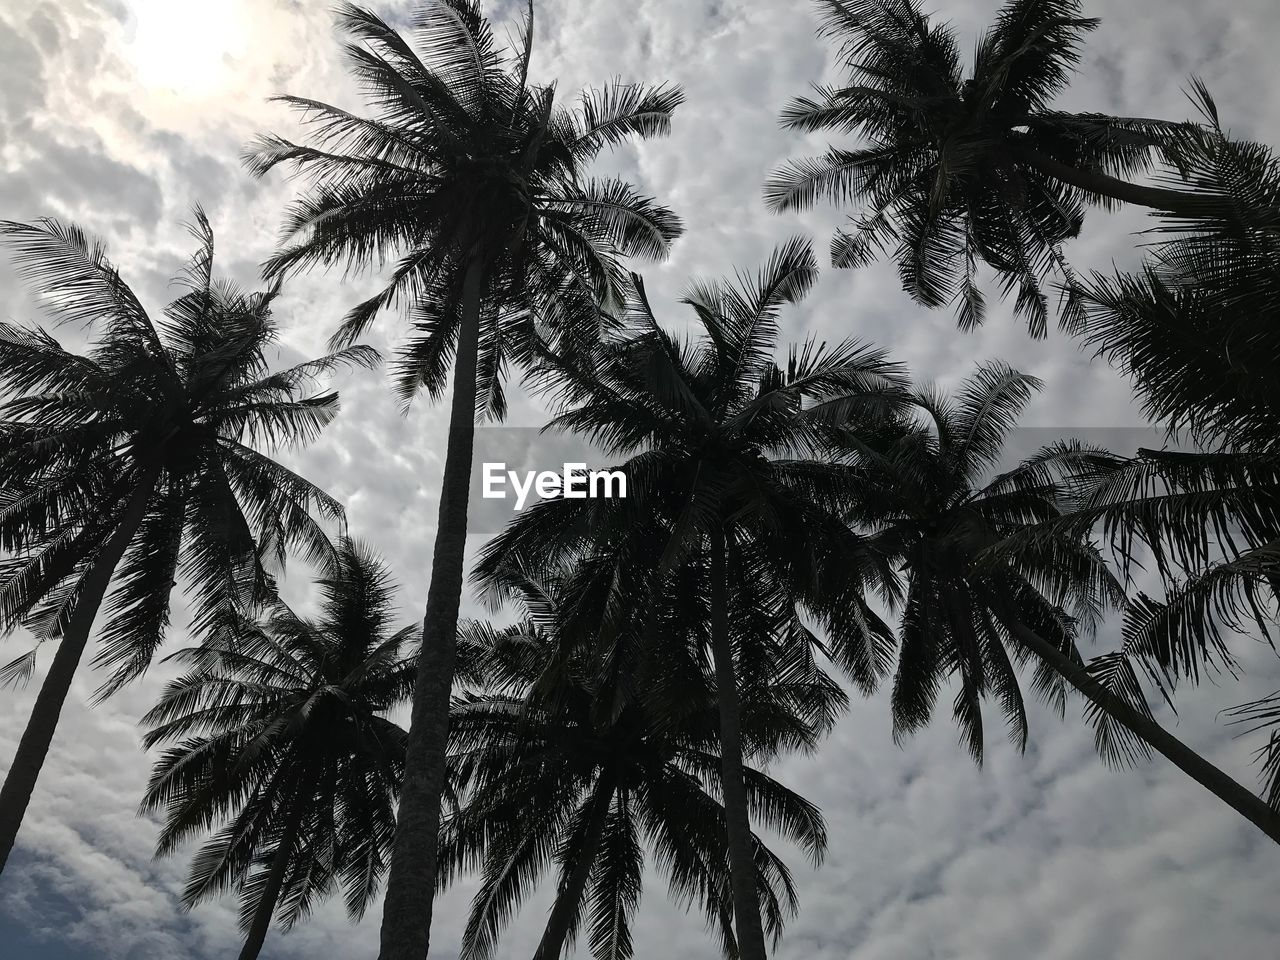 palm tree, tree, low angle view, nature, tree trunk, beauty in nature, sky, growth, no people, outdoors, scenics, tranquility, day, close-up